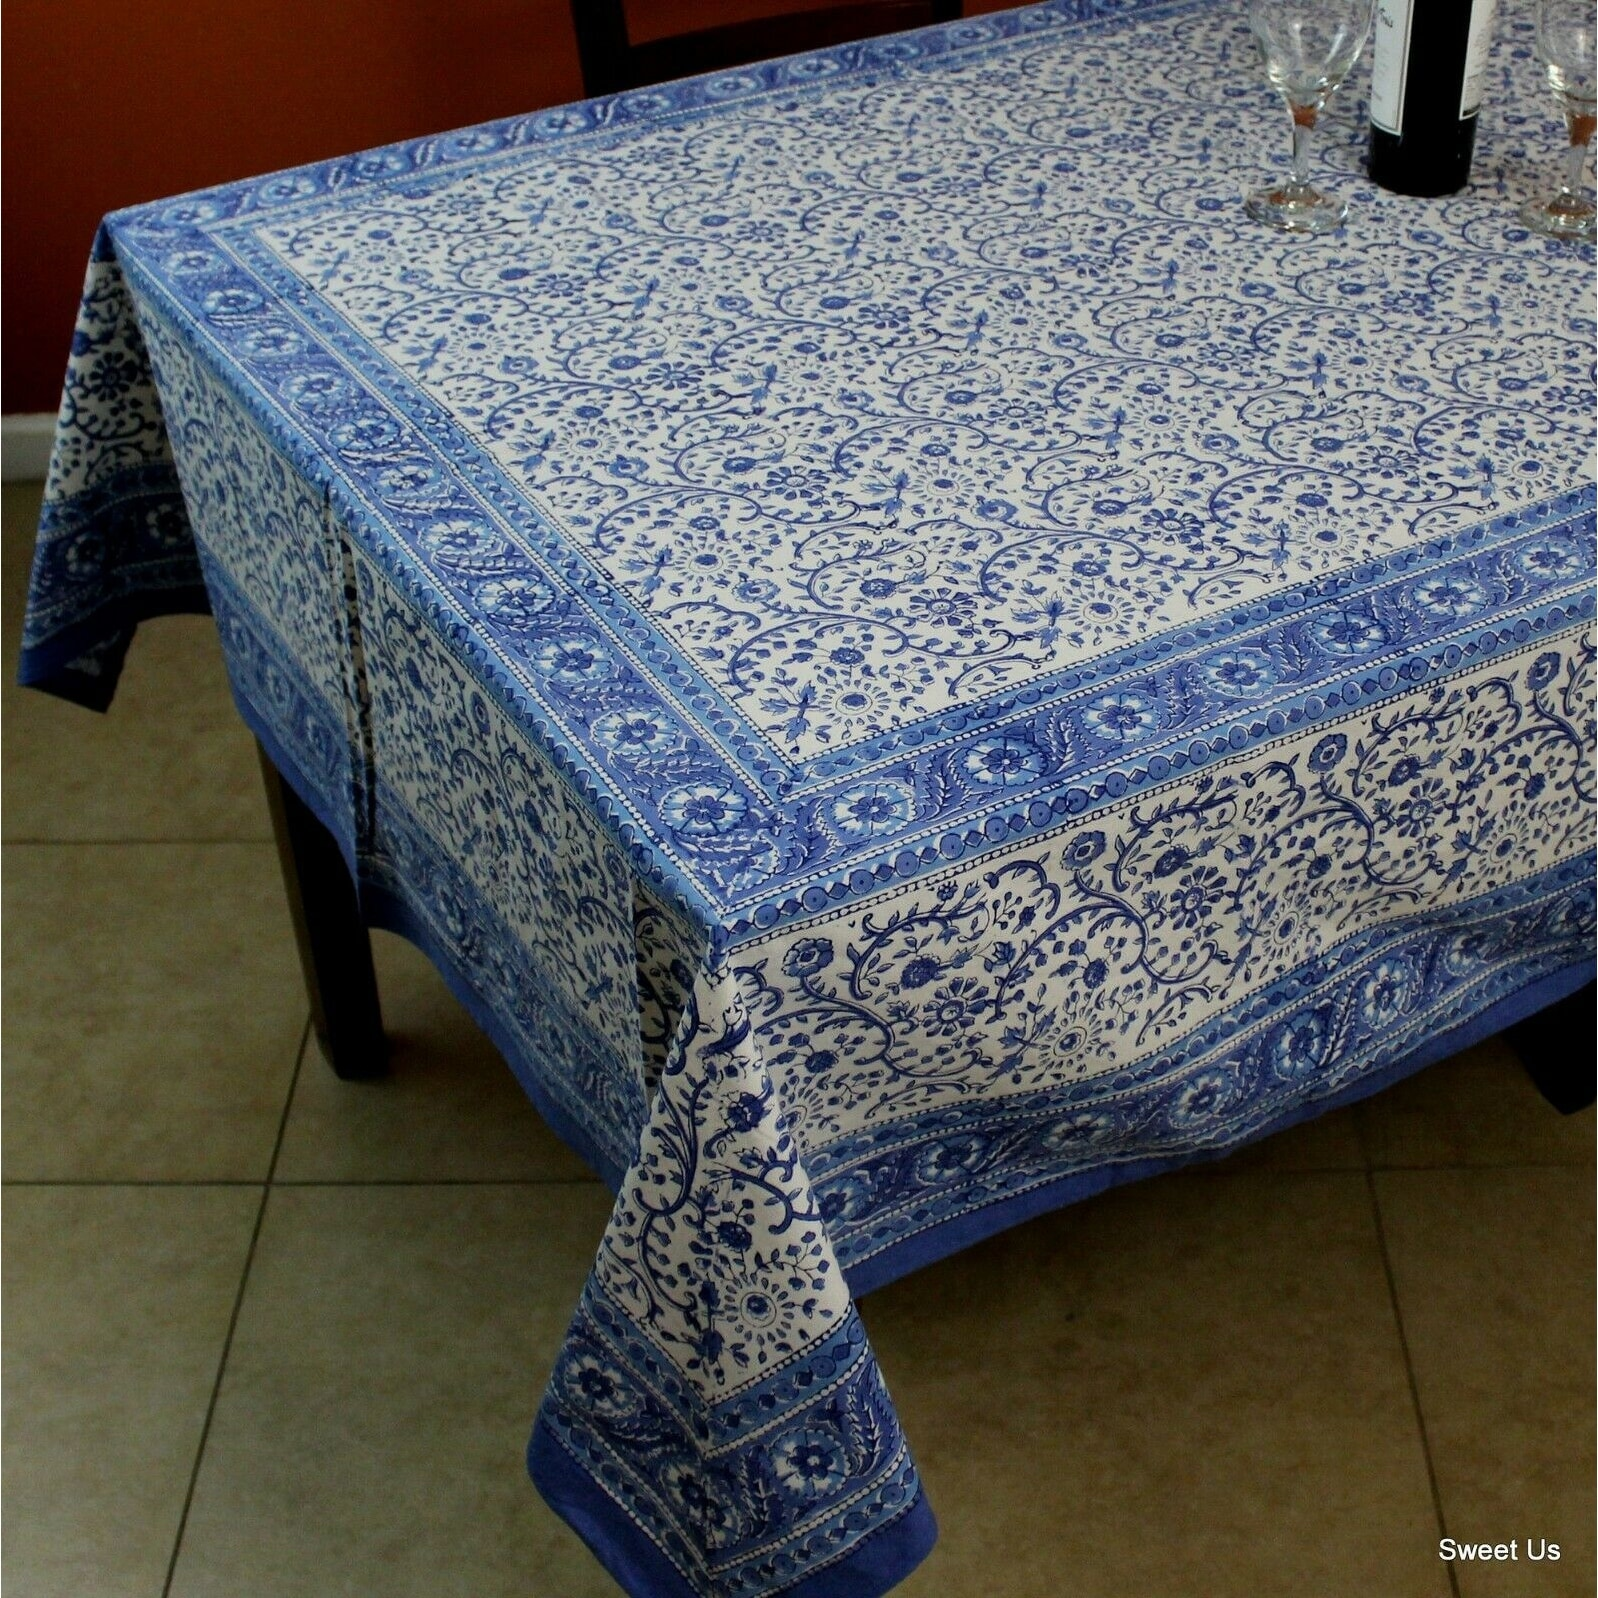 Rajasthan Block Print Floral Round Tablecloth Rectangle Cotton Table Napkins Placemats Runner On Sale Overstock 11995562